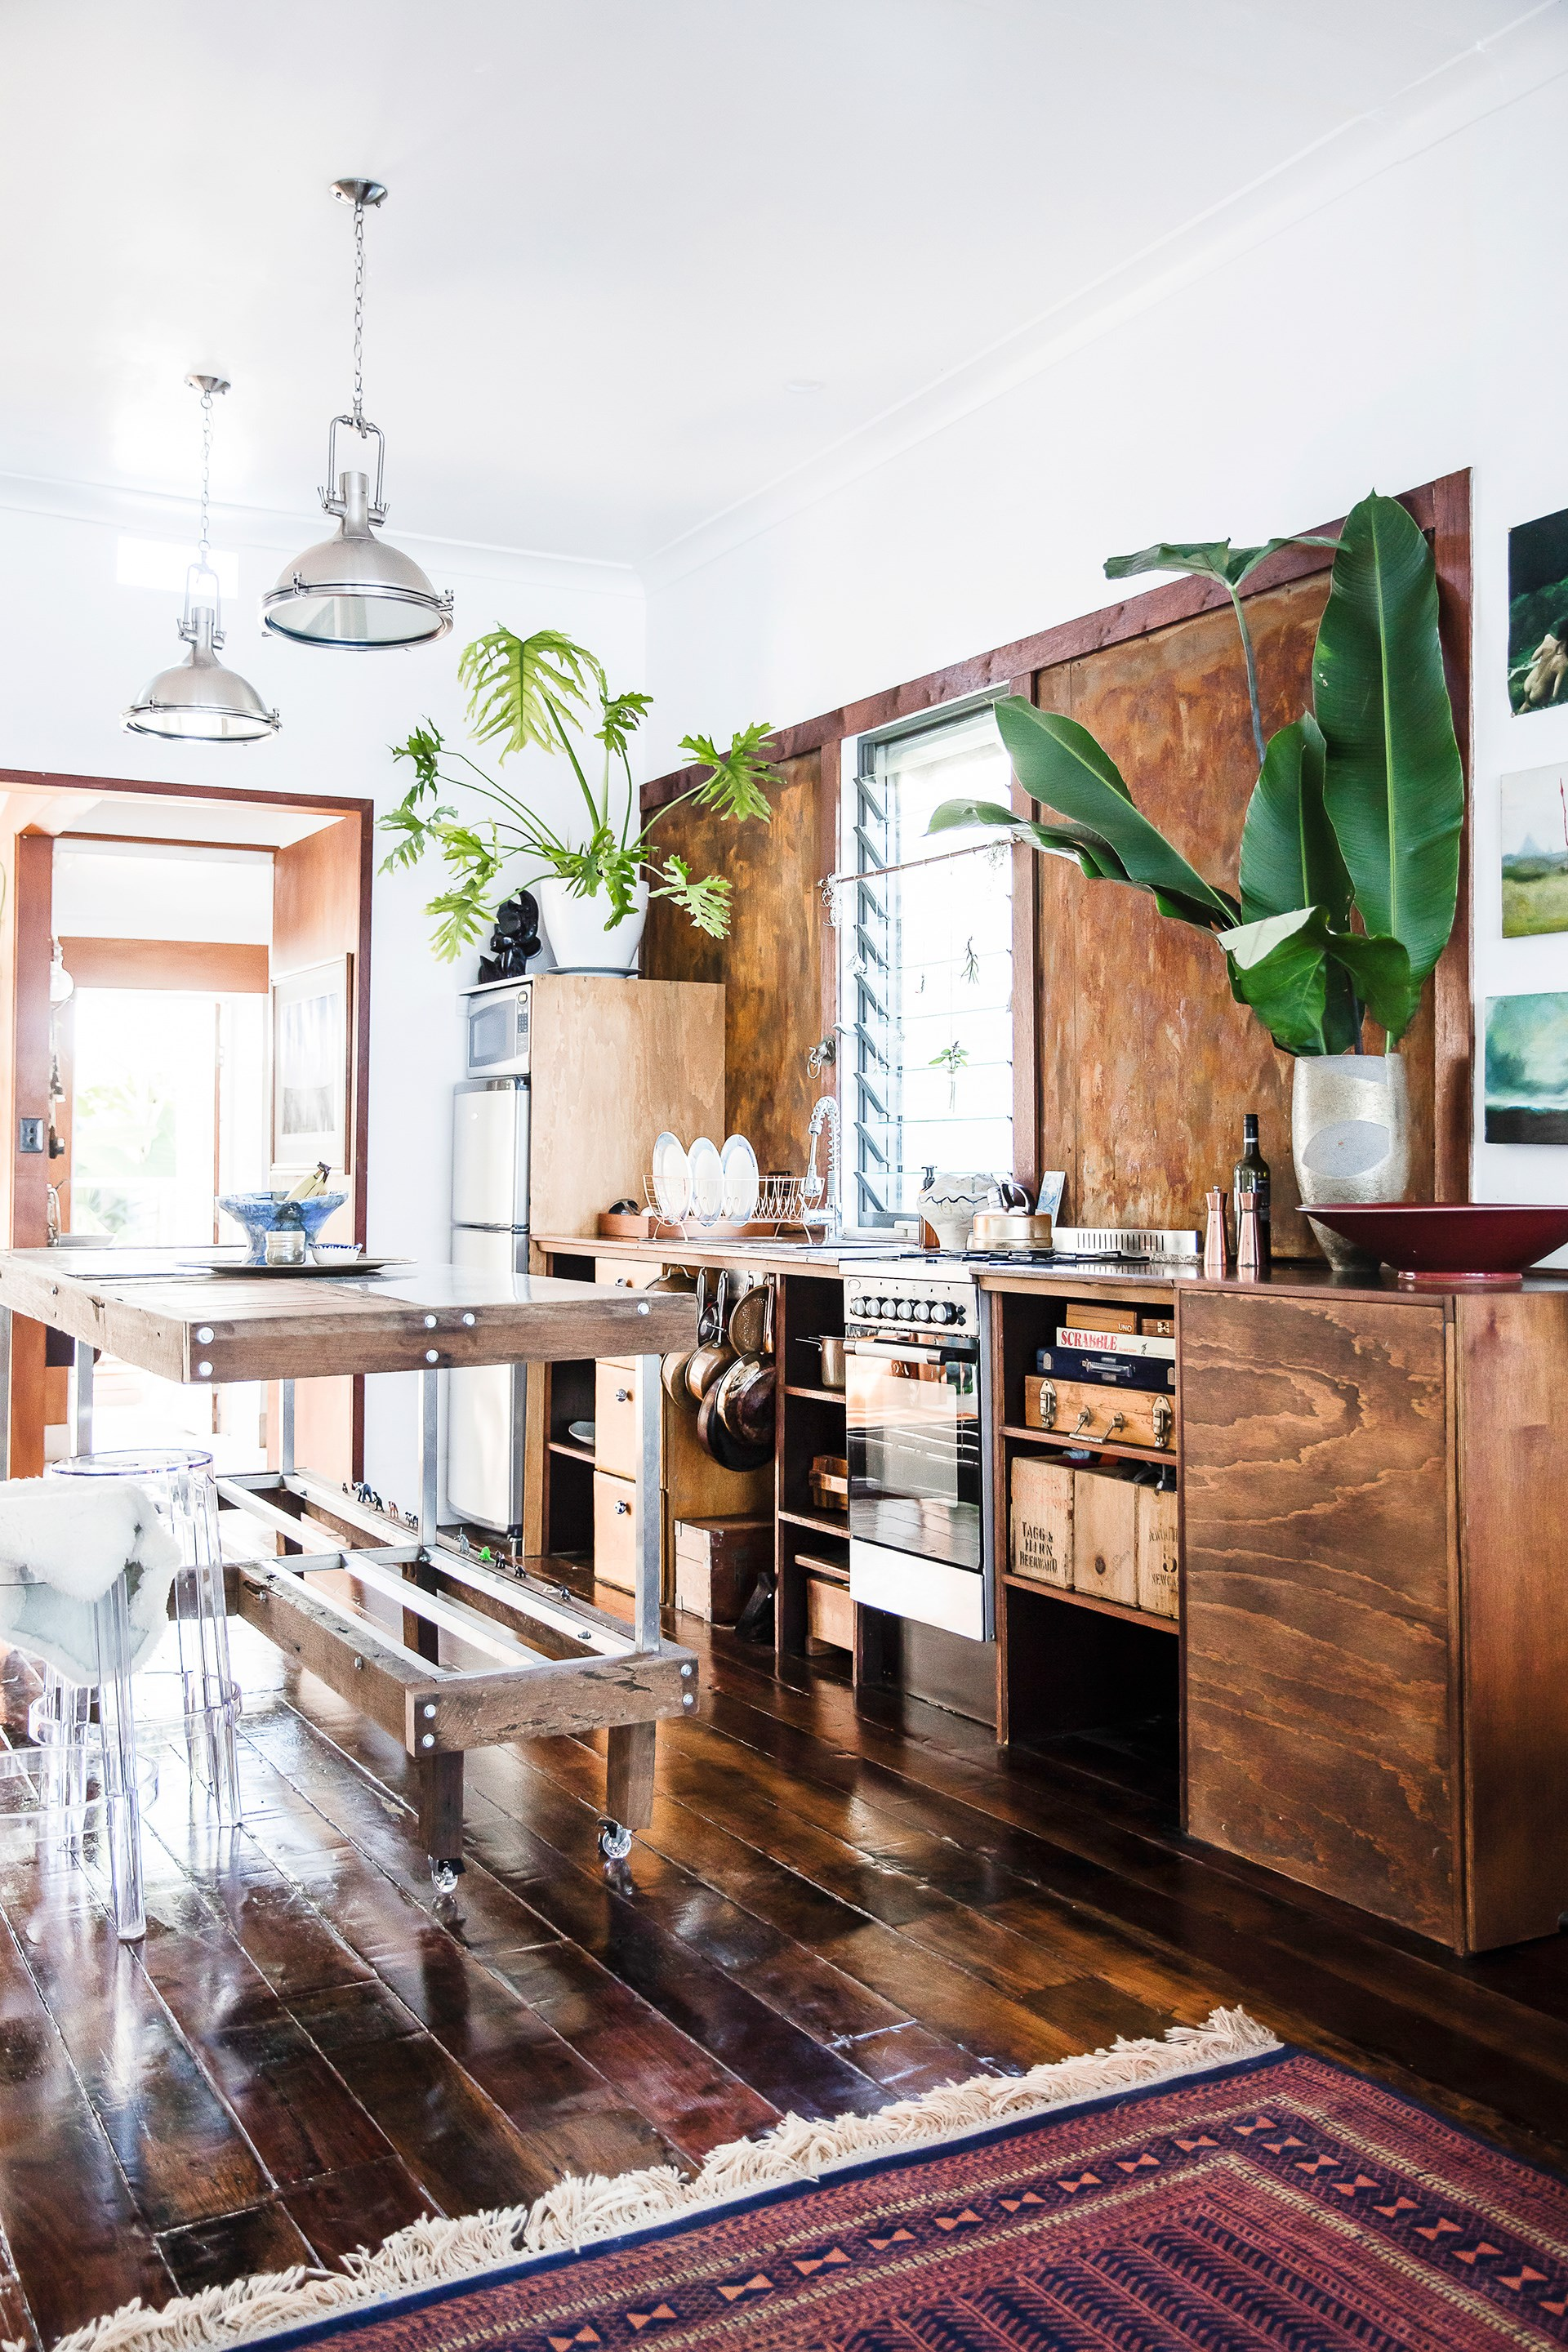 "When you strip a kitchen down to the most basic materials you can create a space that feels more like an interior and less like a page out of a hardware catalogue. The owners of this rustic [Newcastle home](http://www.homestolove.com.au/boho-style-house-tour-in-newcastle-4051|target=""_blank"") haven't used tiles, splashbacks or rangehoods – creating a room with a whole lot of warmth."